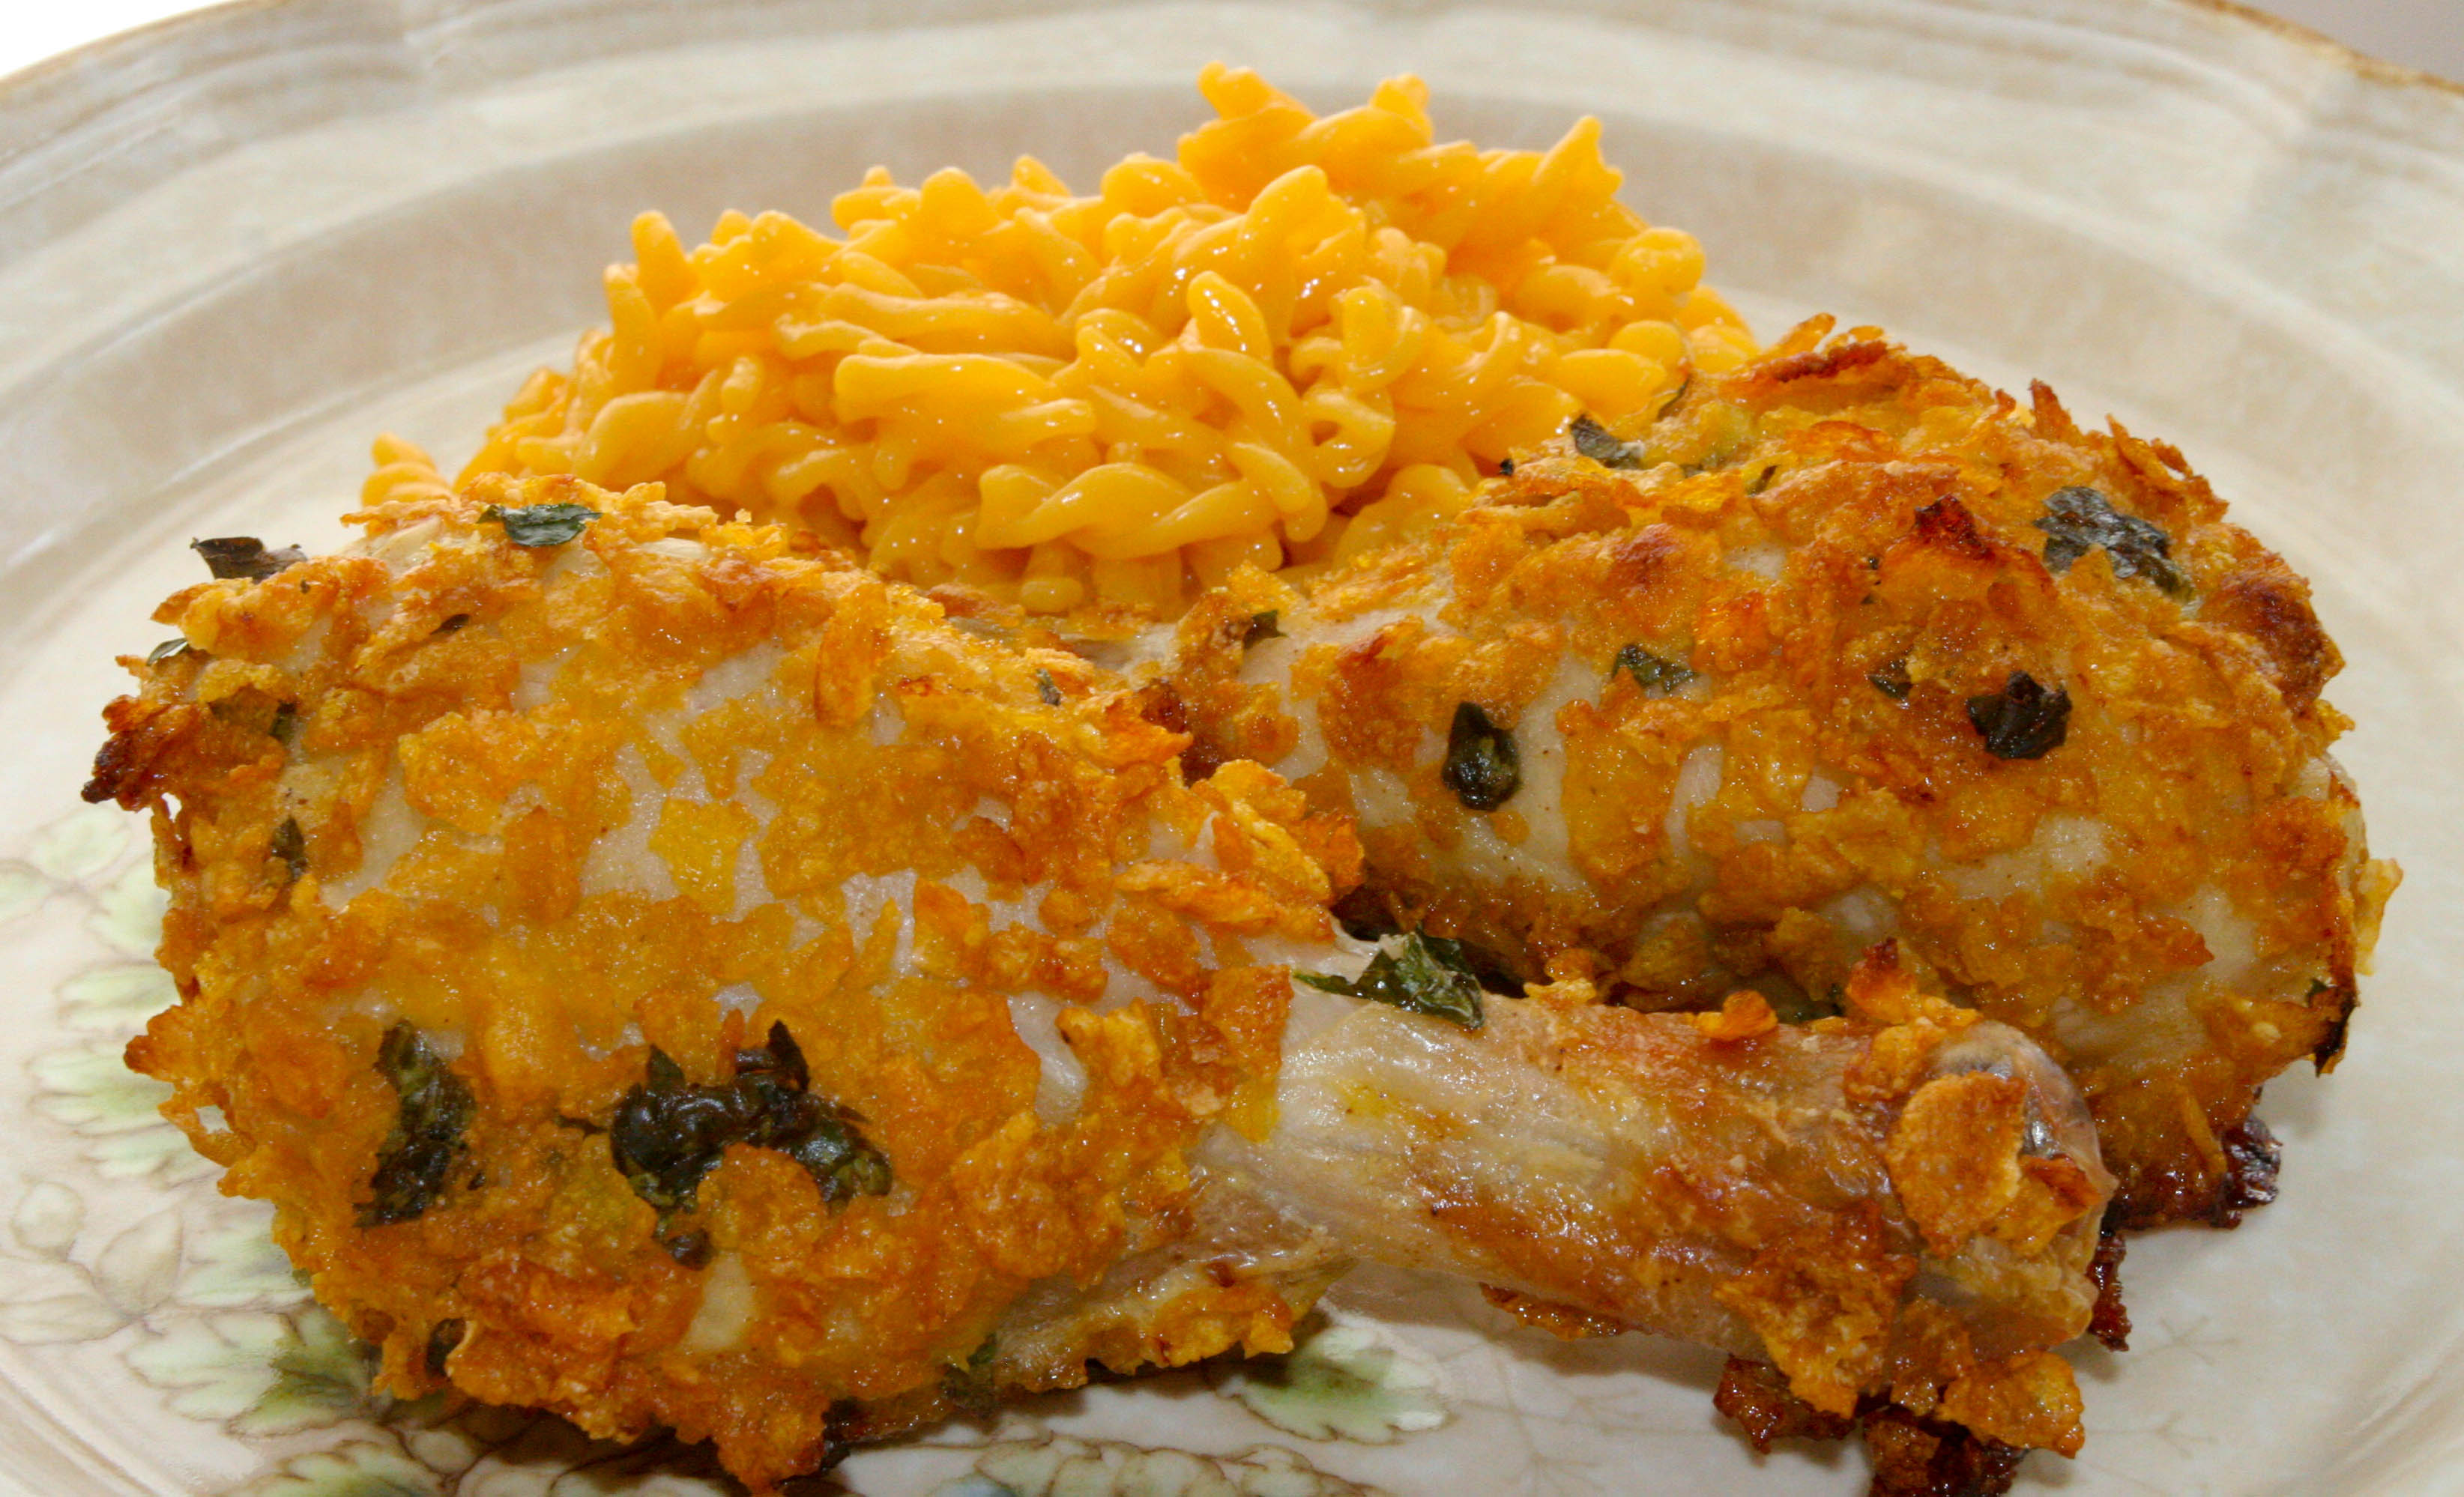 Cornflake Crusted Baked Chicken Legs – The Quick & Dirty Kitchen